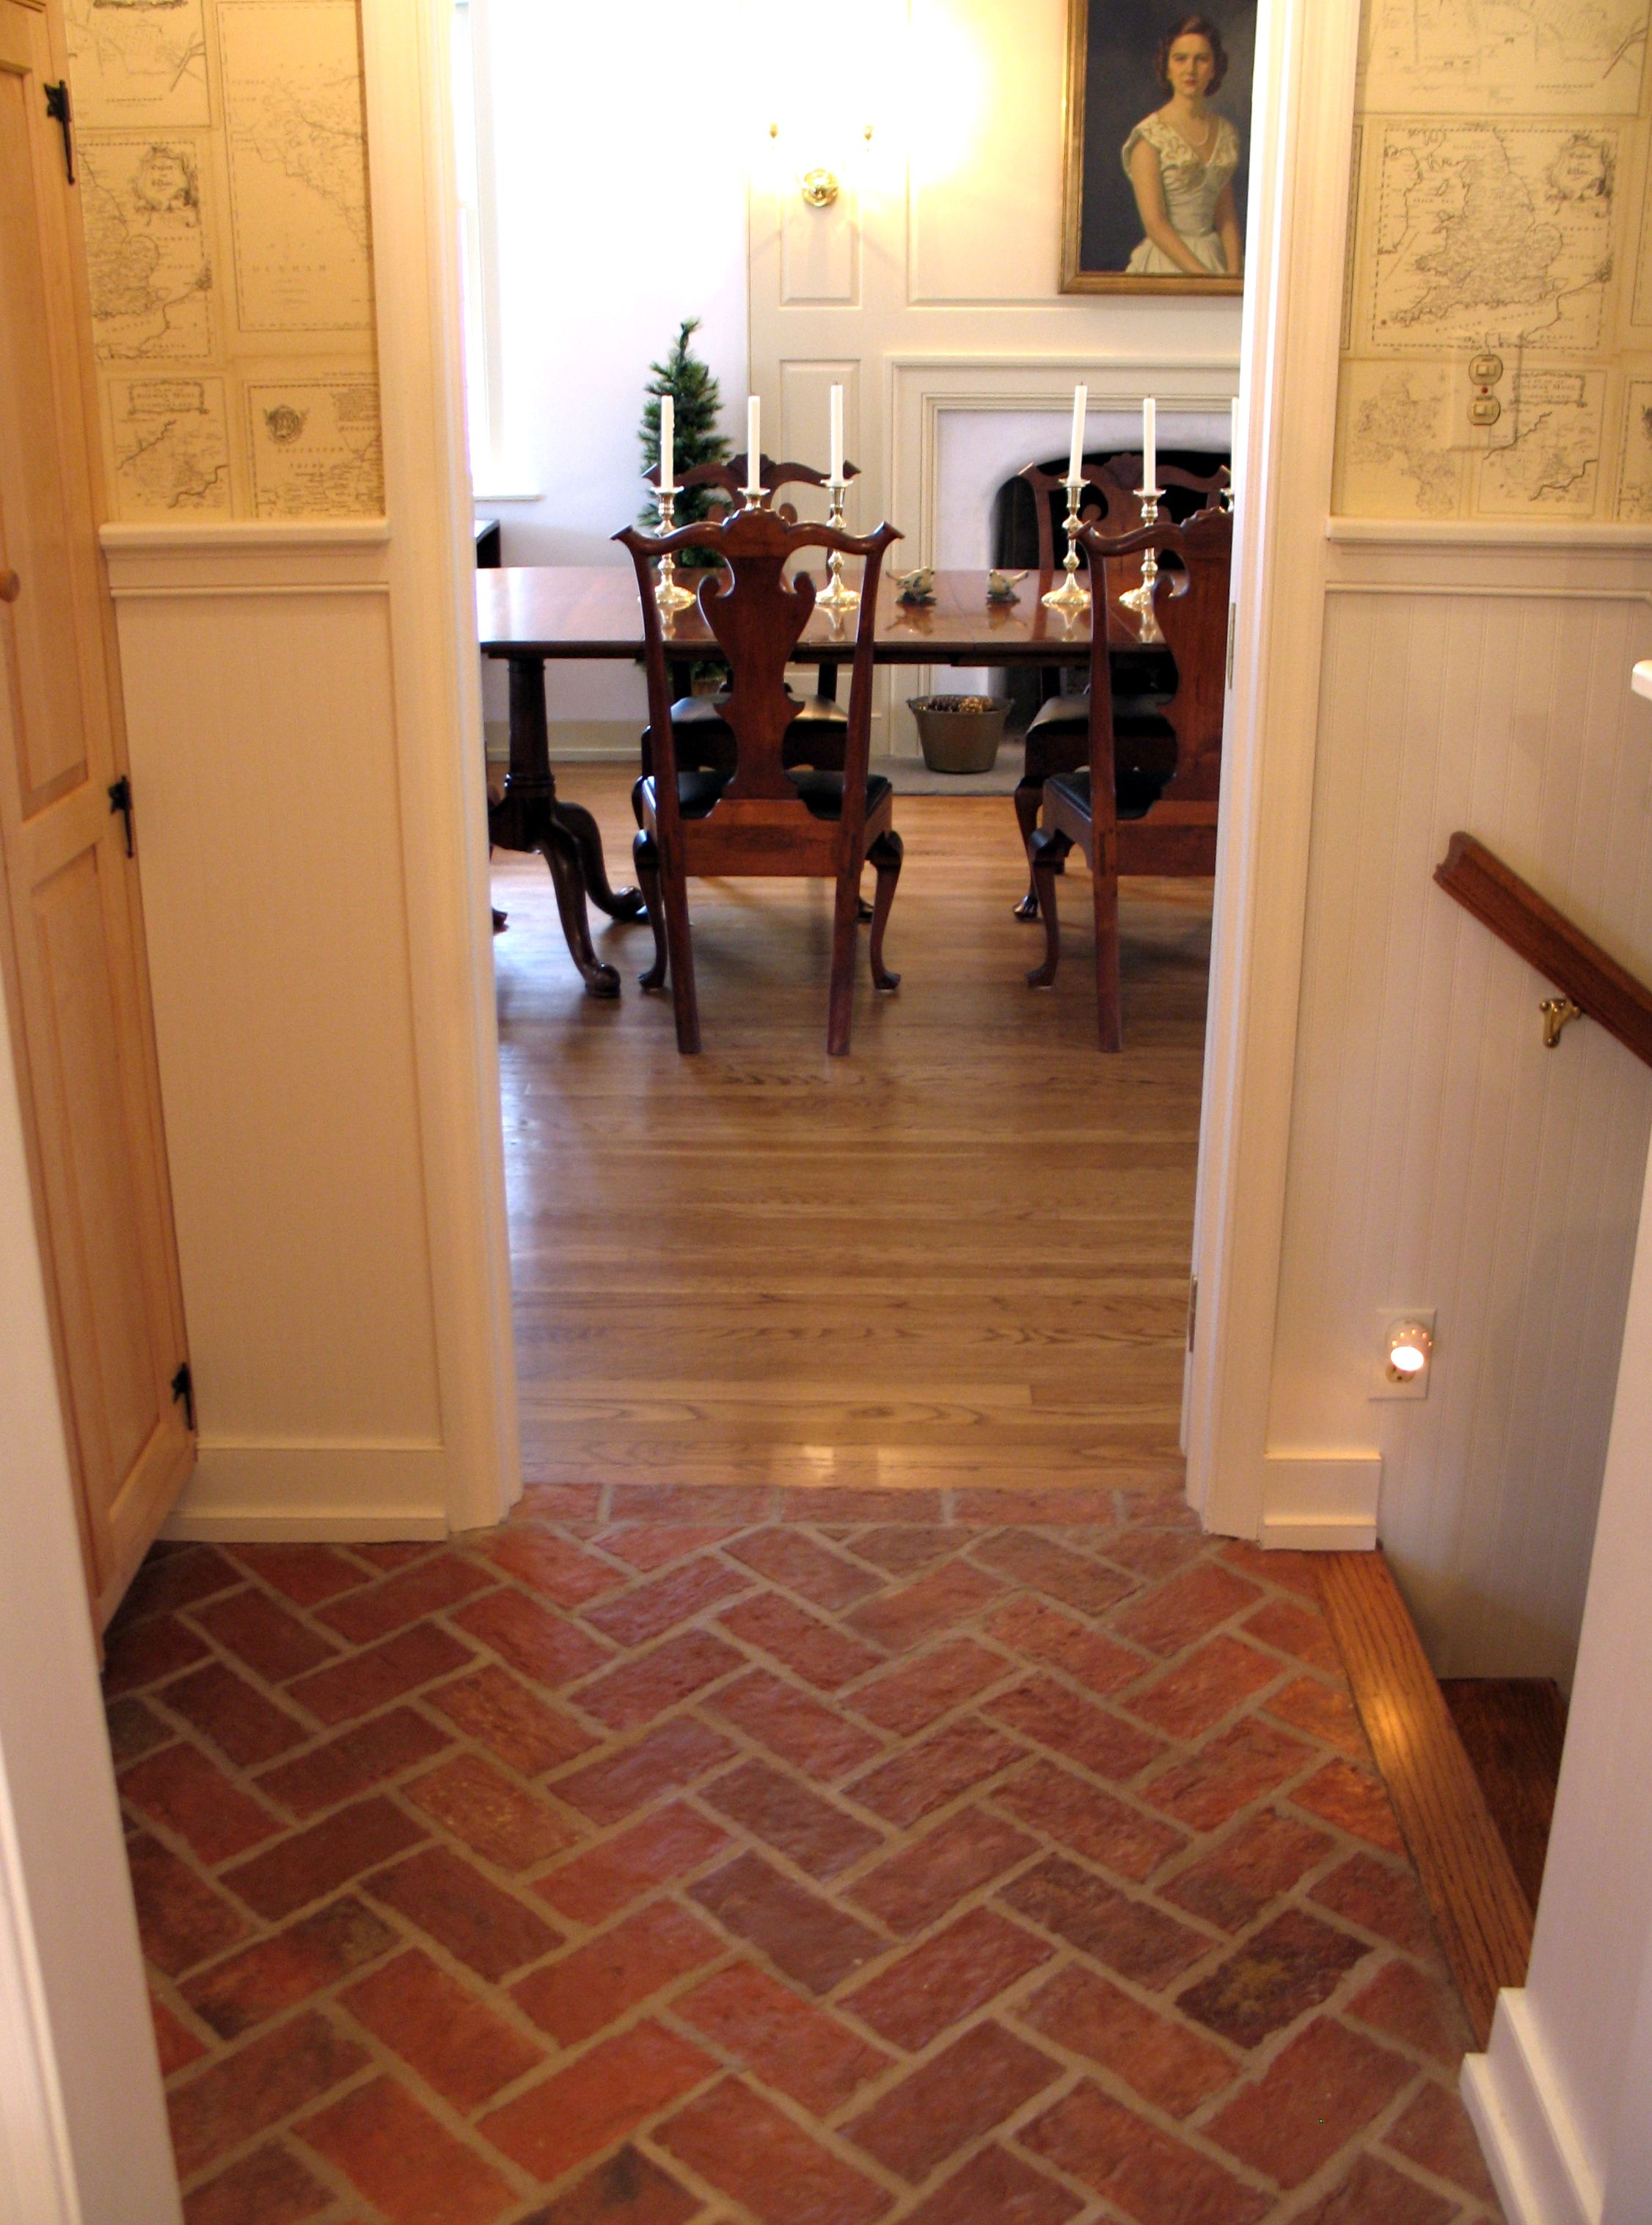 Mudroom wrights ferry 48 brick tile love love love traditional antique 48 brick tile news from inglenook tile dailygadgetfo Images